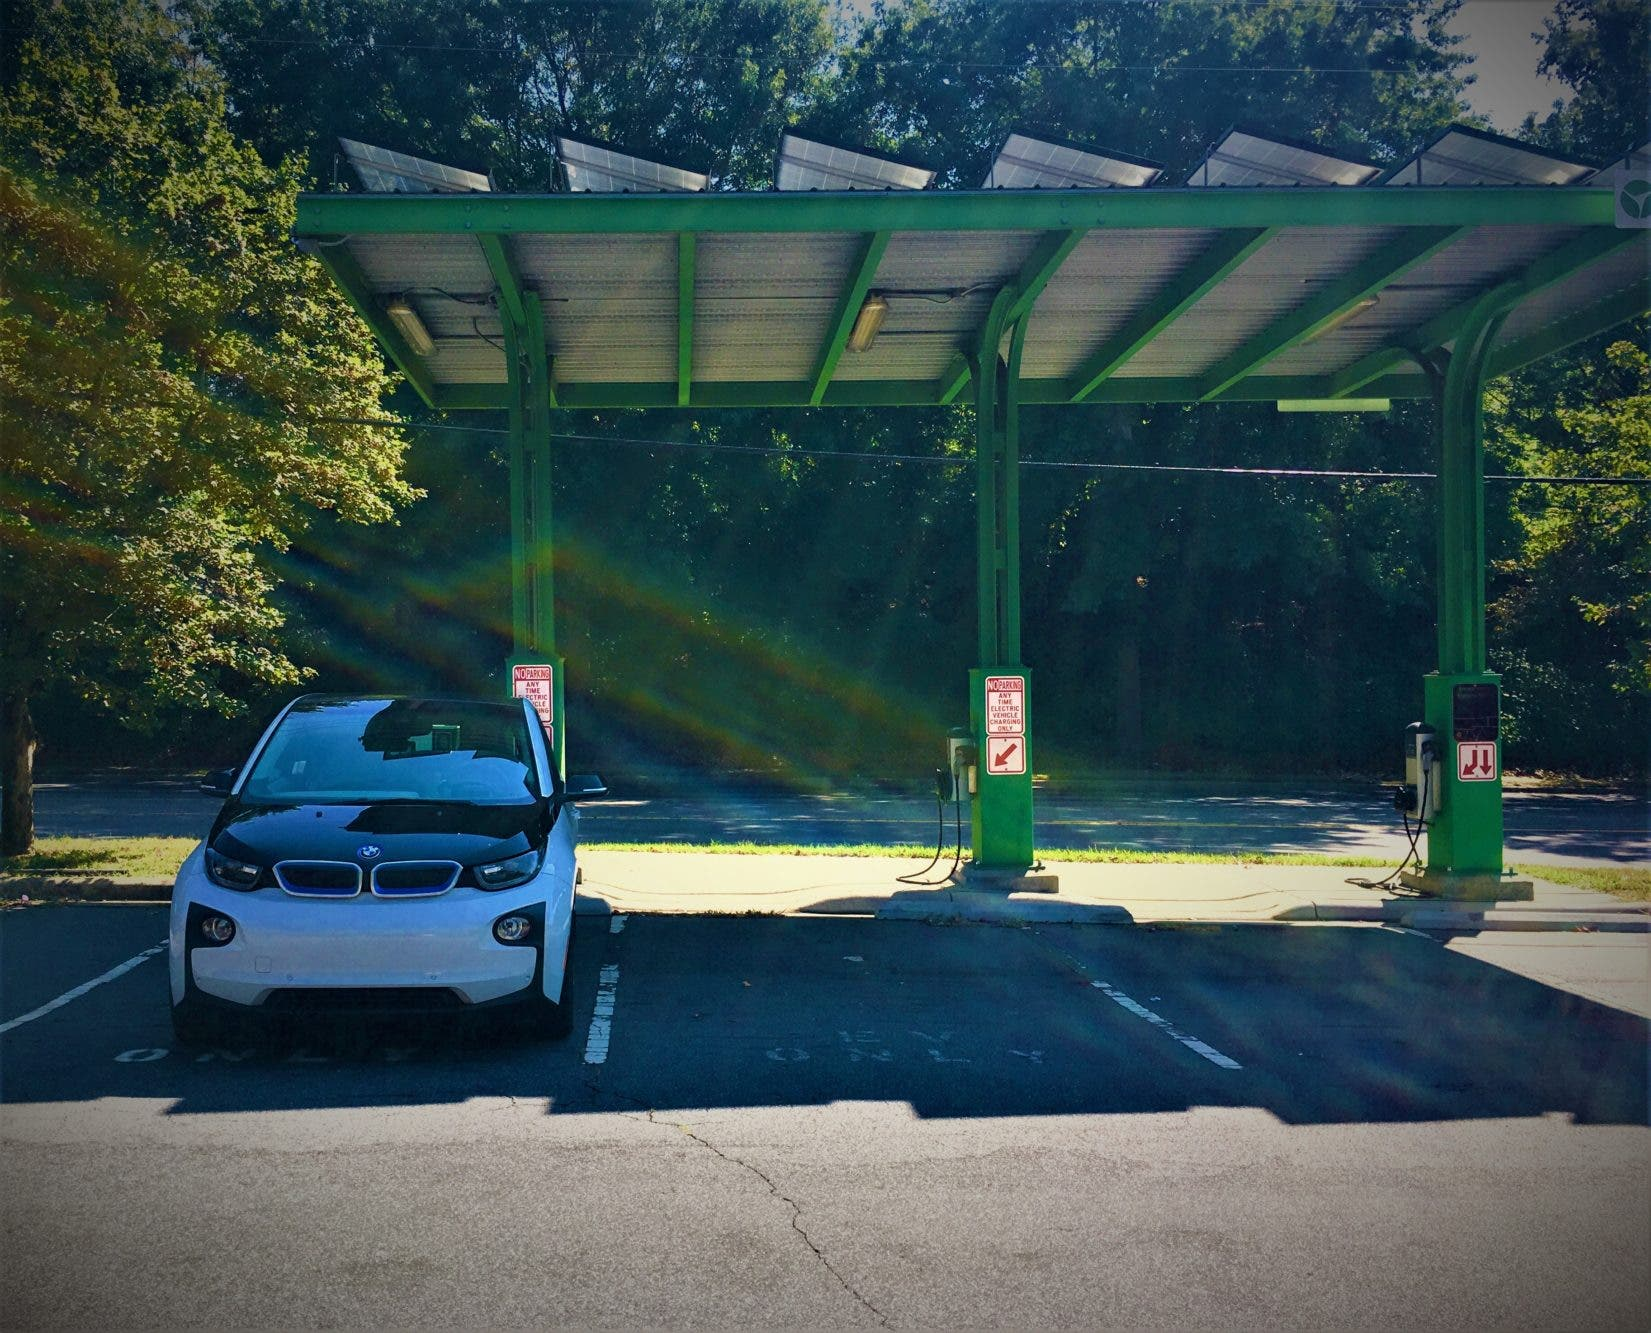 BMW i3, Image by Cynthia Shahan | CleanTechnica